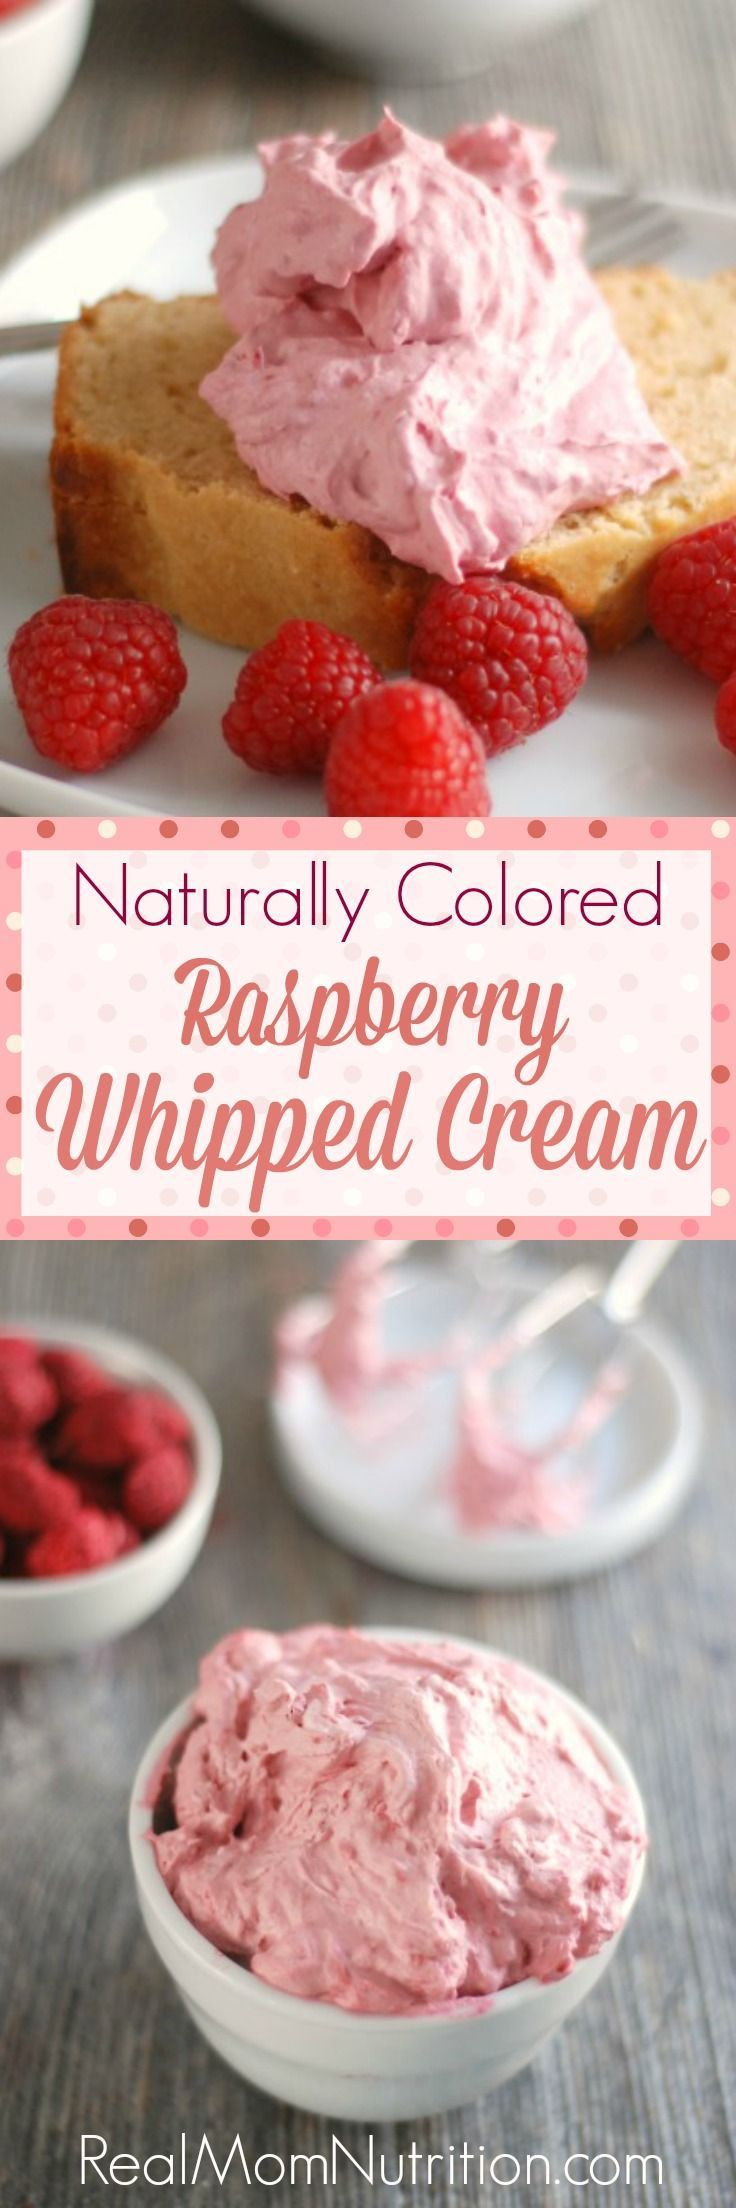 Skip the fake food dyes! Naturally Colored Raspberry Whipped Cream